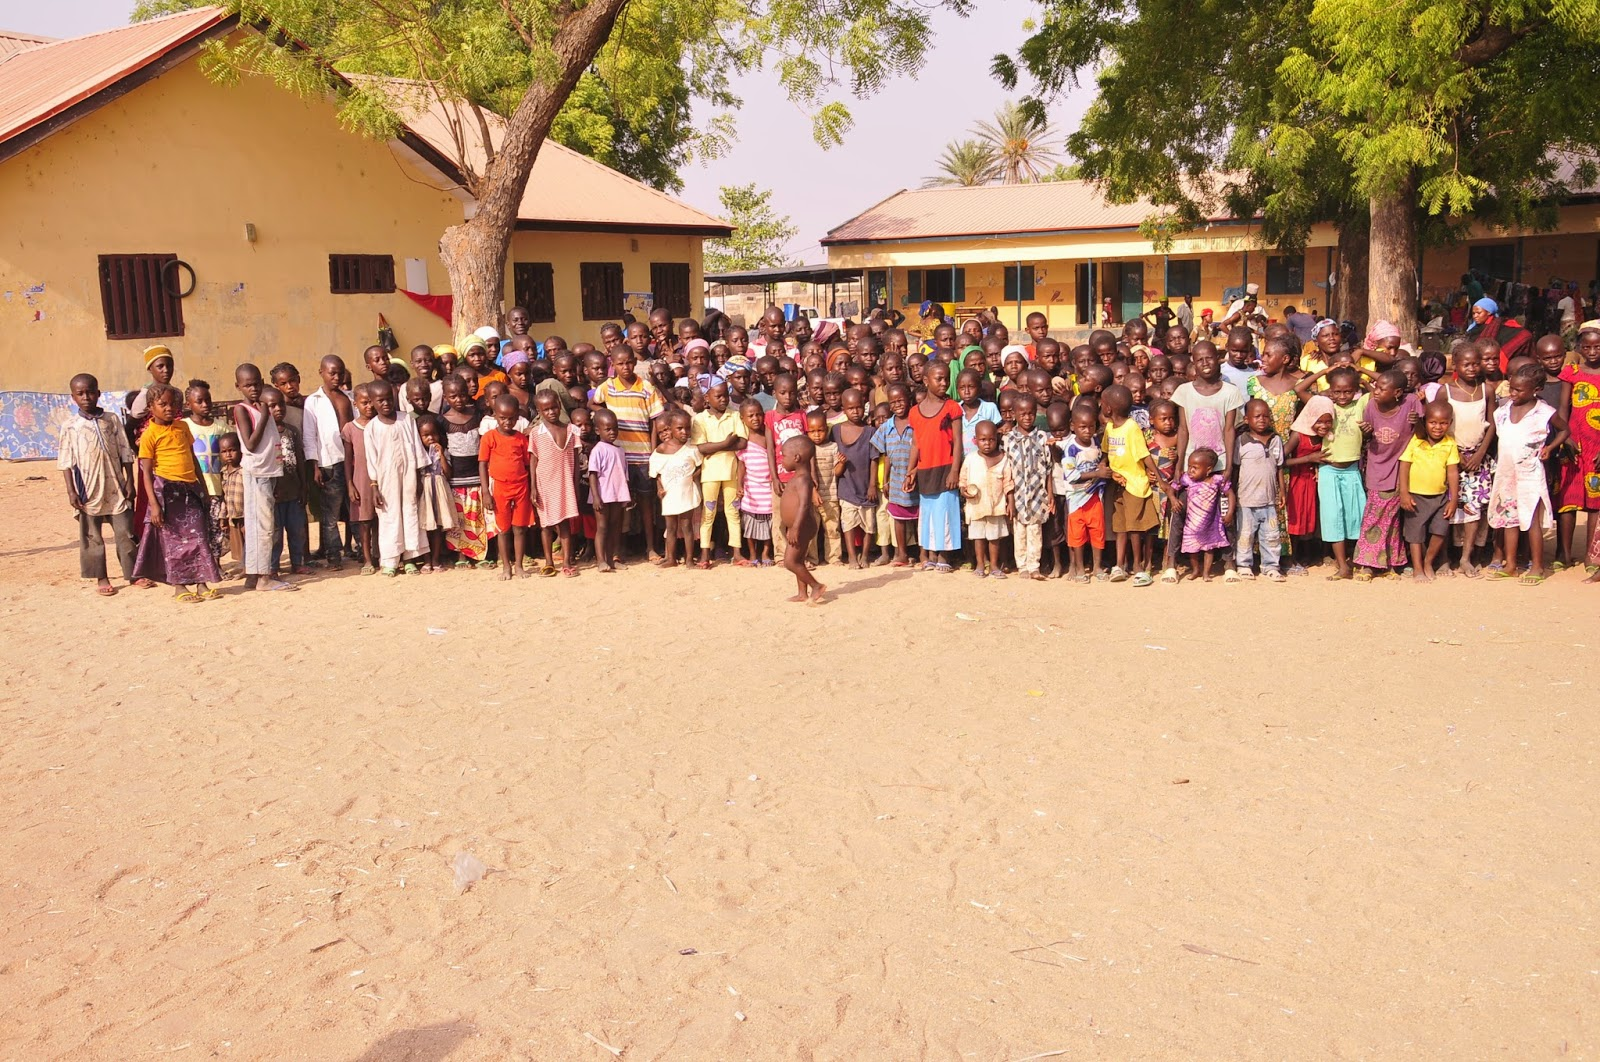 education of 501 displaced children between the ages of 1 to 14yrs at the Lamido Lawal Model Primary School, Girei LGA, in Adamawa State